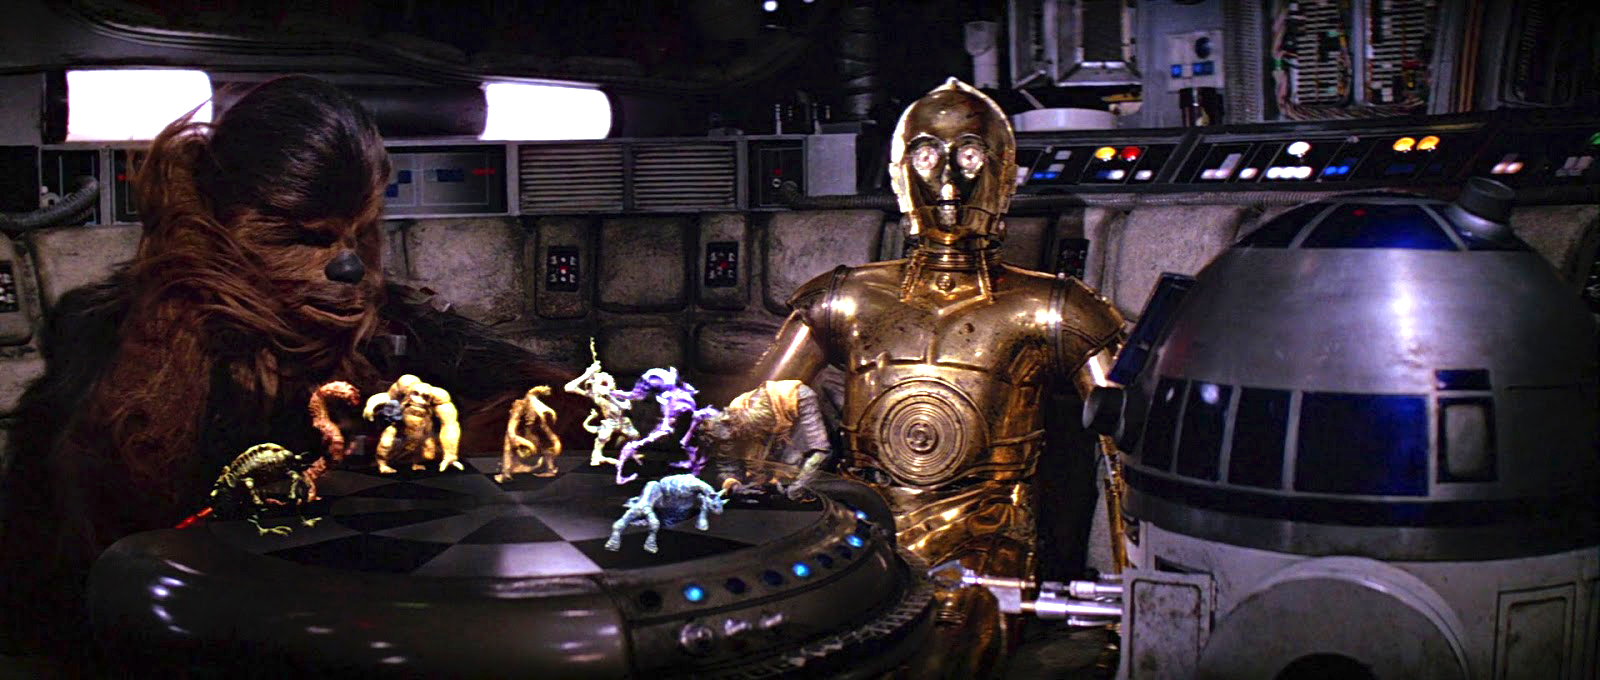 Screencap from Star Wars, a science fiction film from 1977